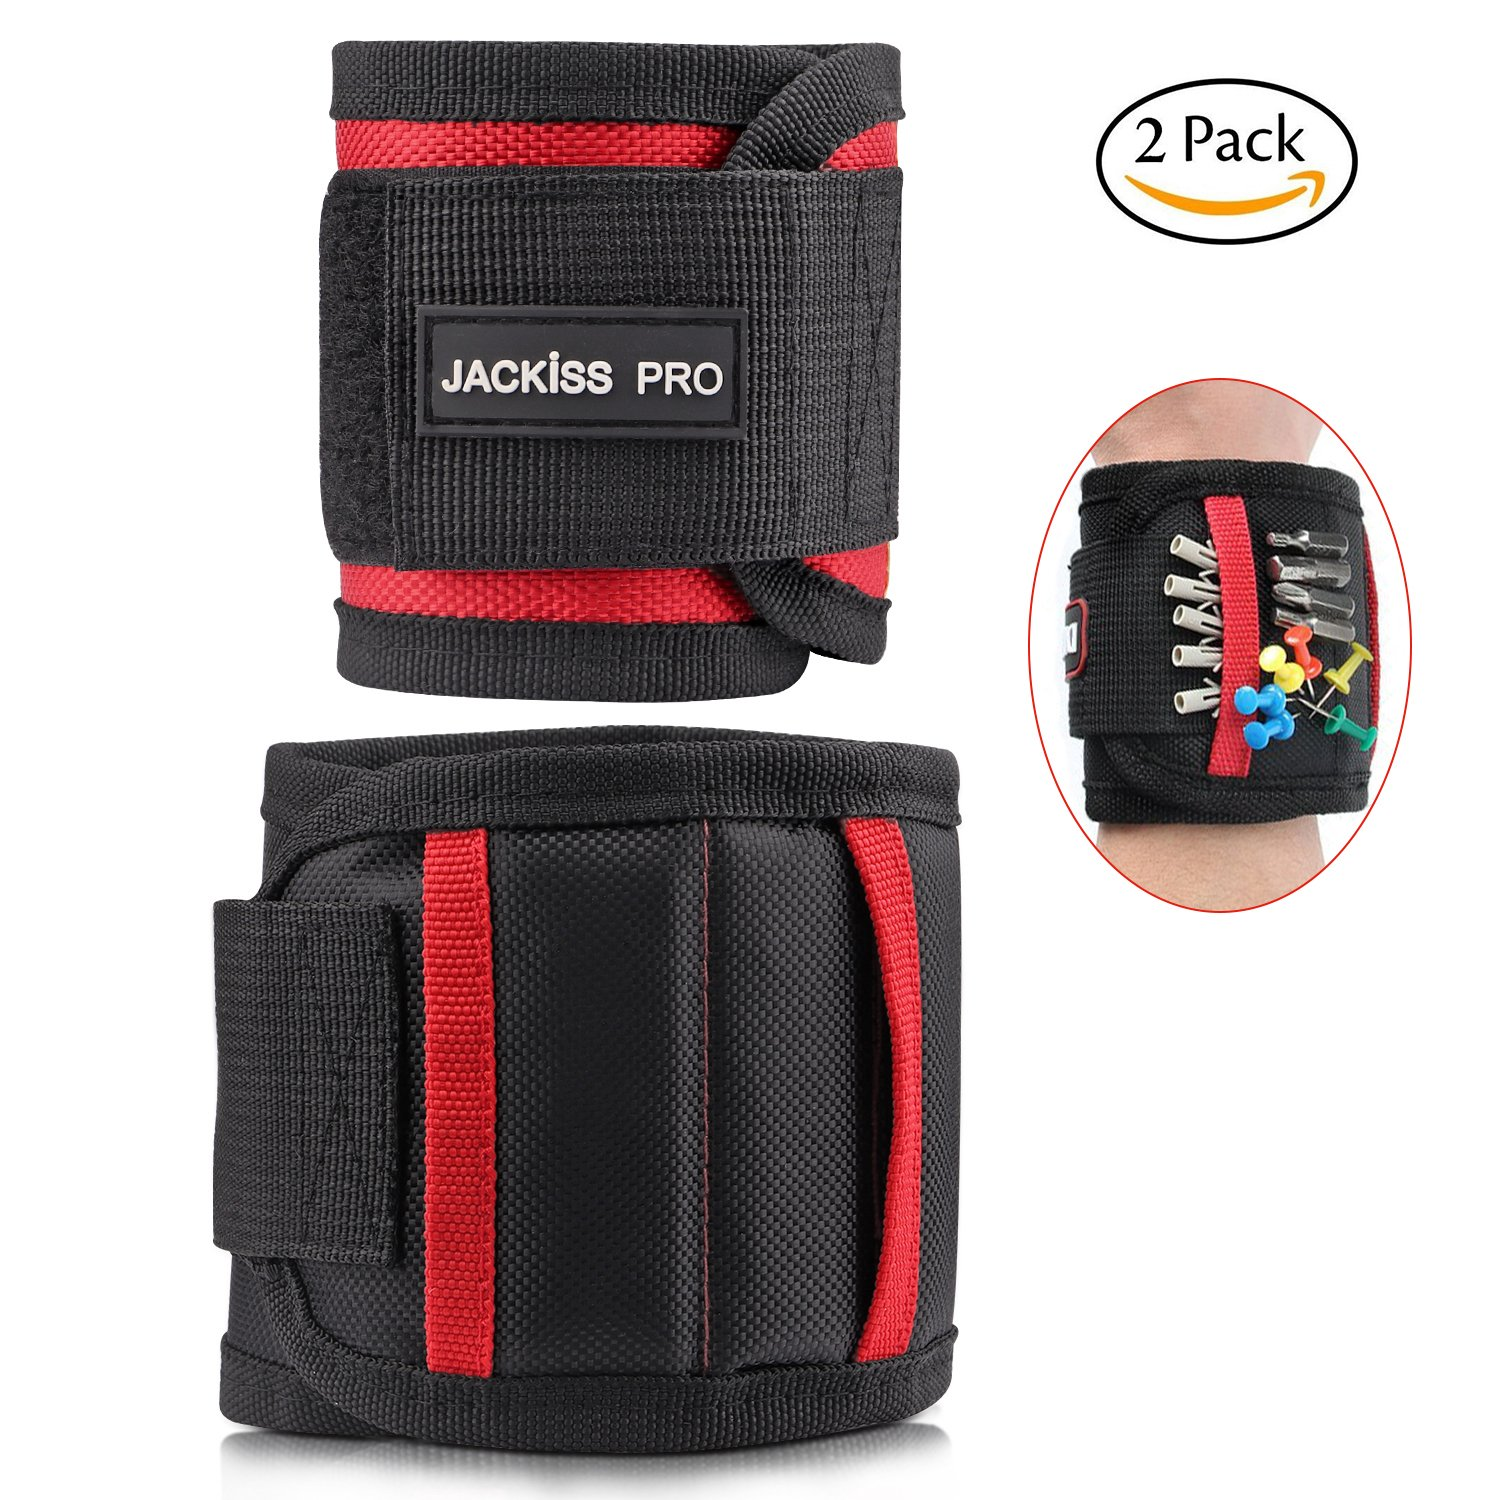 Magnetic Wristband with 15 Super Strong Magnets,Magnetic Wrist for Holding Tools Screws Nails Drilling Bits Armband Gift for DIY Handyman Men Dad Husband Boyfriend Women By JACKiSS PRO (2 Sizes)